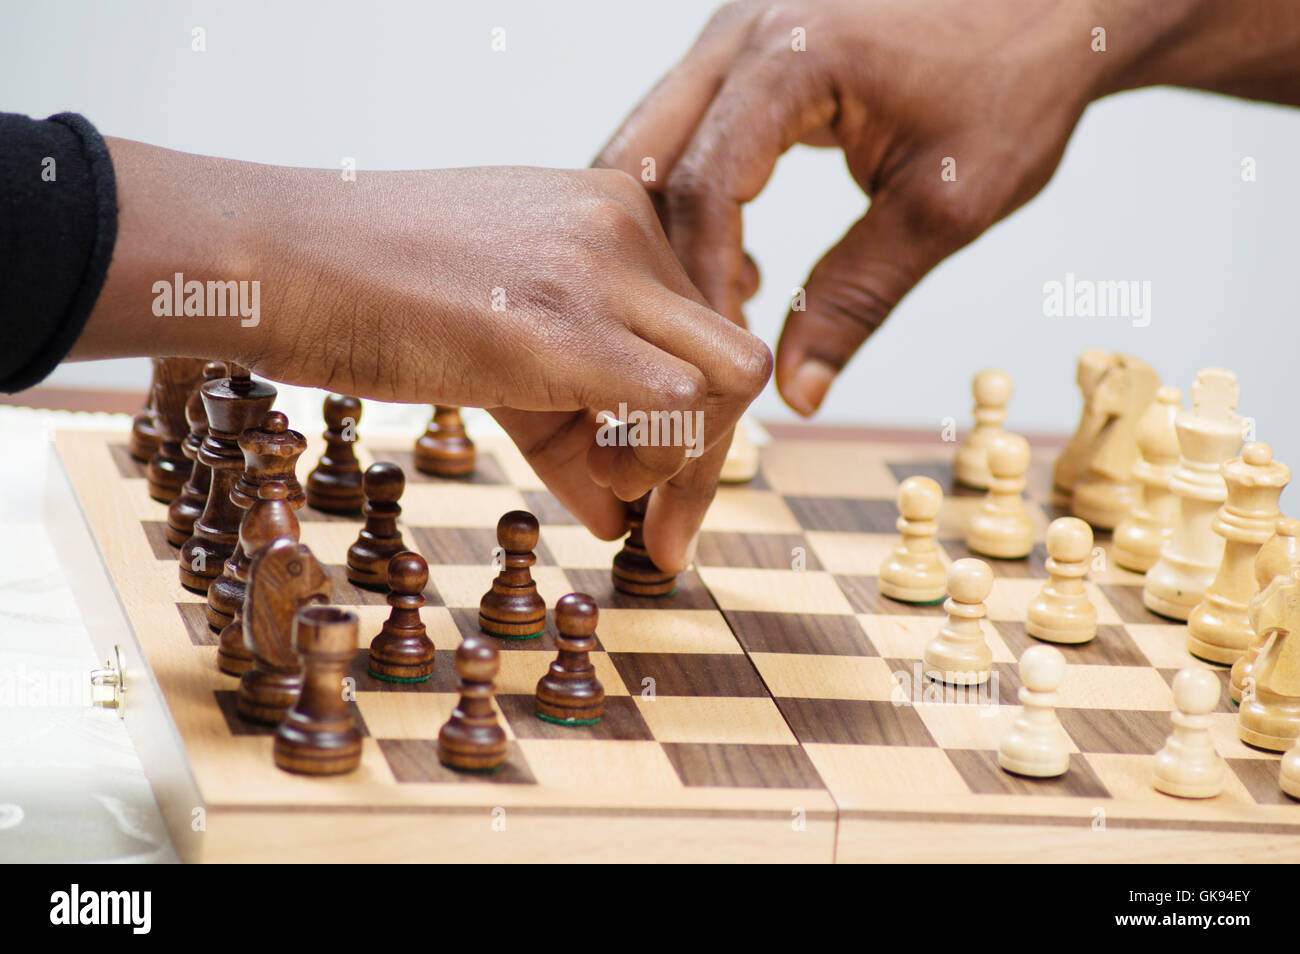 In this game, both players attack simultaneously. - Stock Image